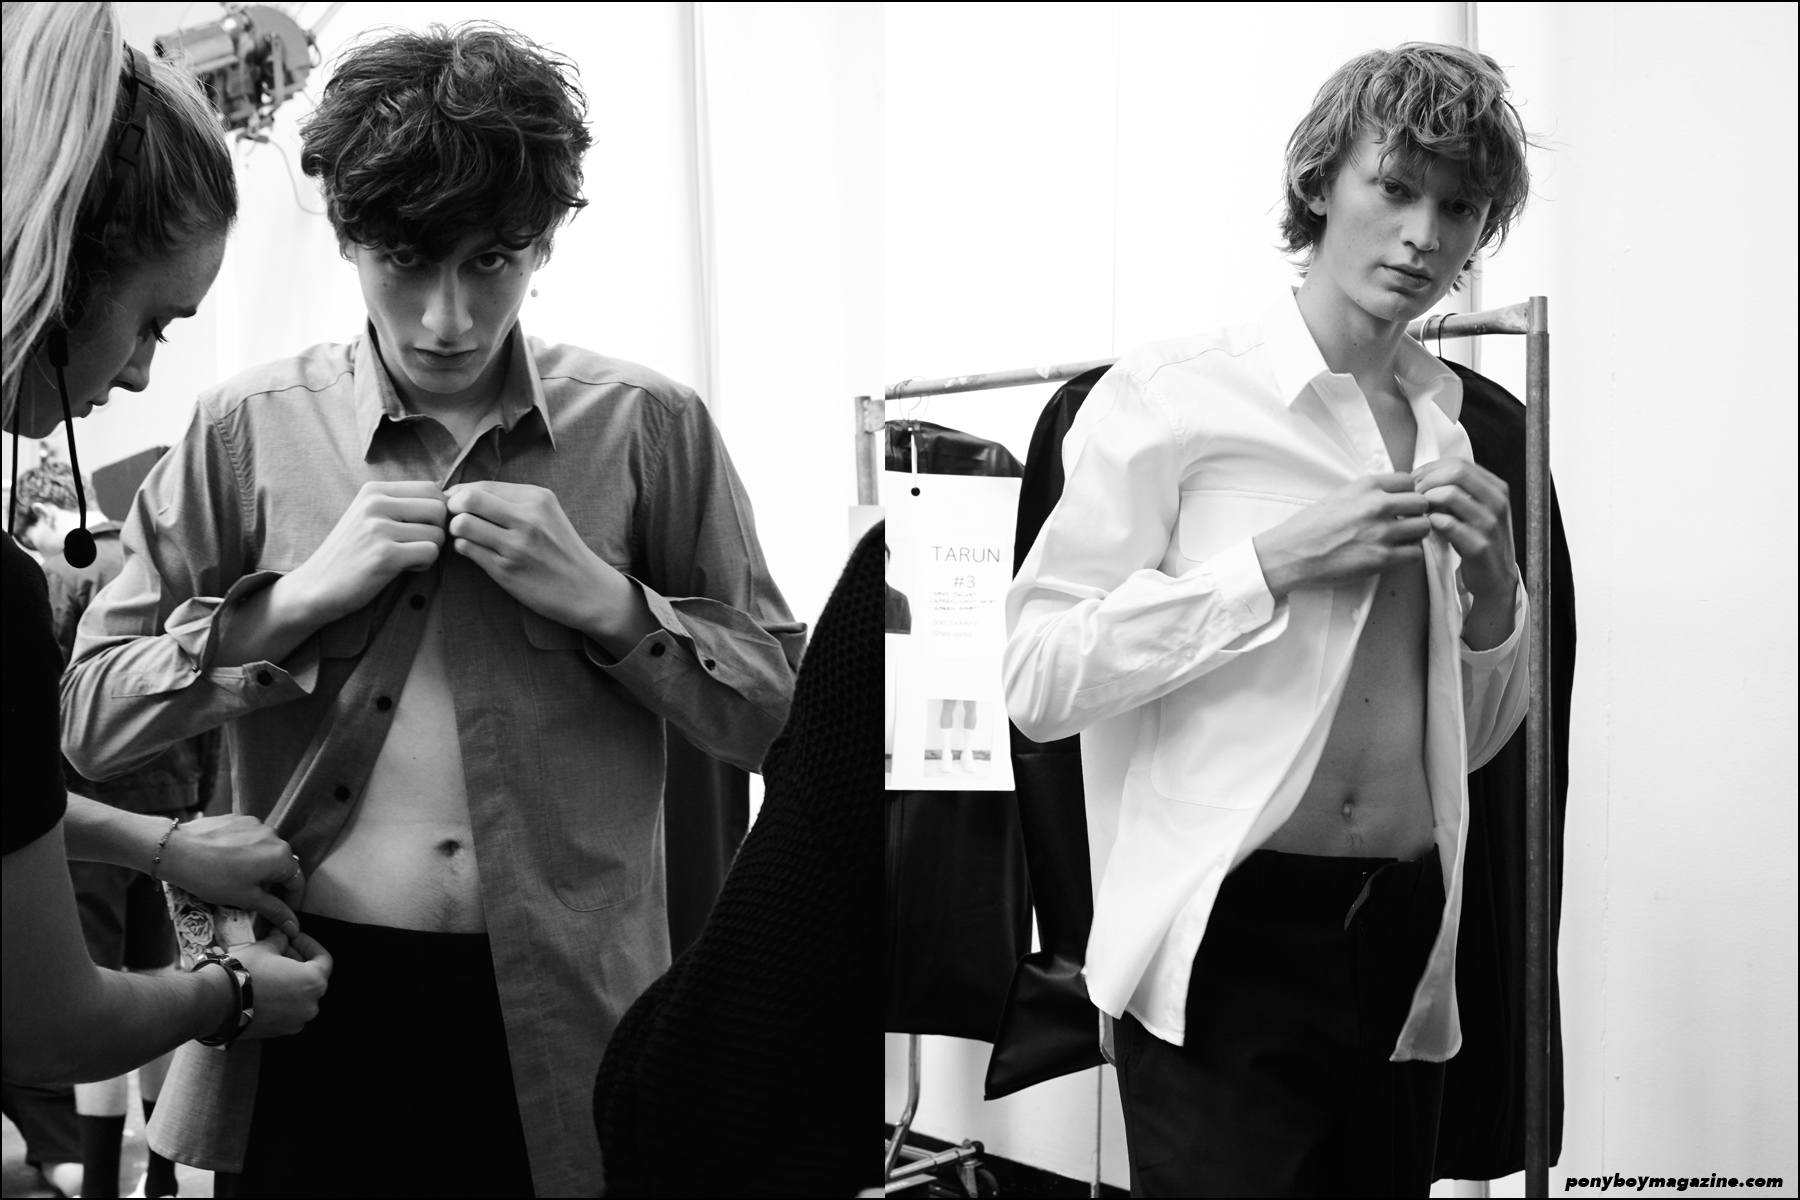 Henry Kitcher and Jonas Gloer, photographed backstage at Carlos Campos Spring/Summer 2016, at Industria Studios in New York. Photography by Alexander Thompson for Ponyboy magazine NY.